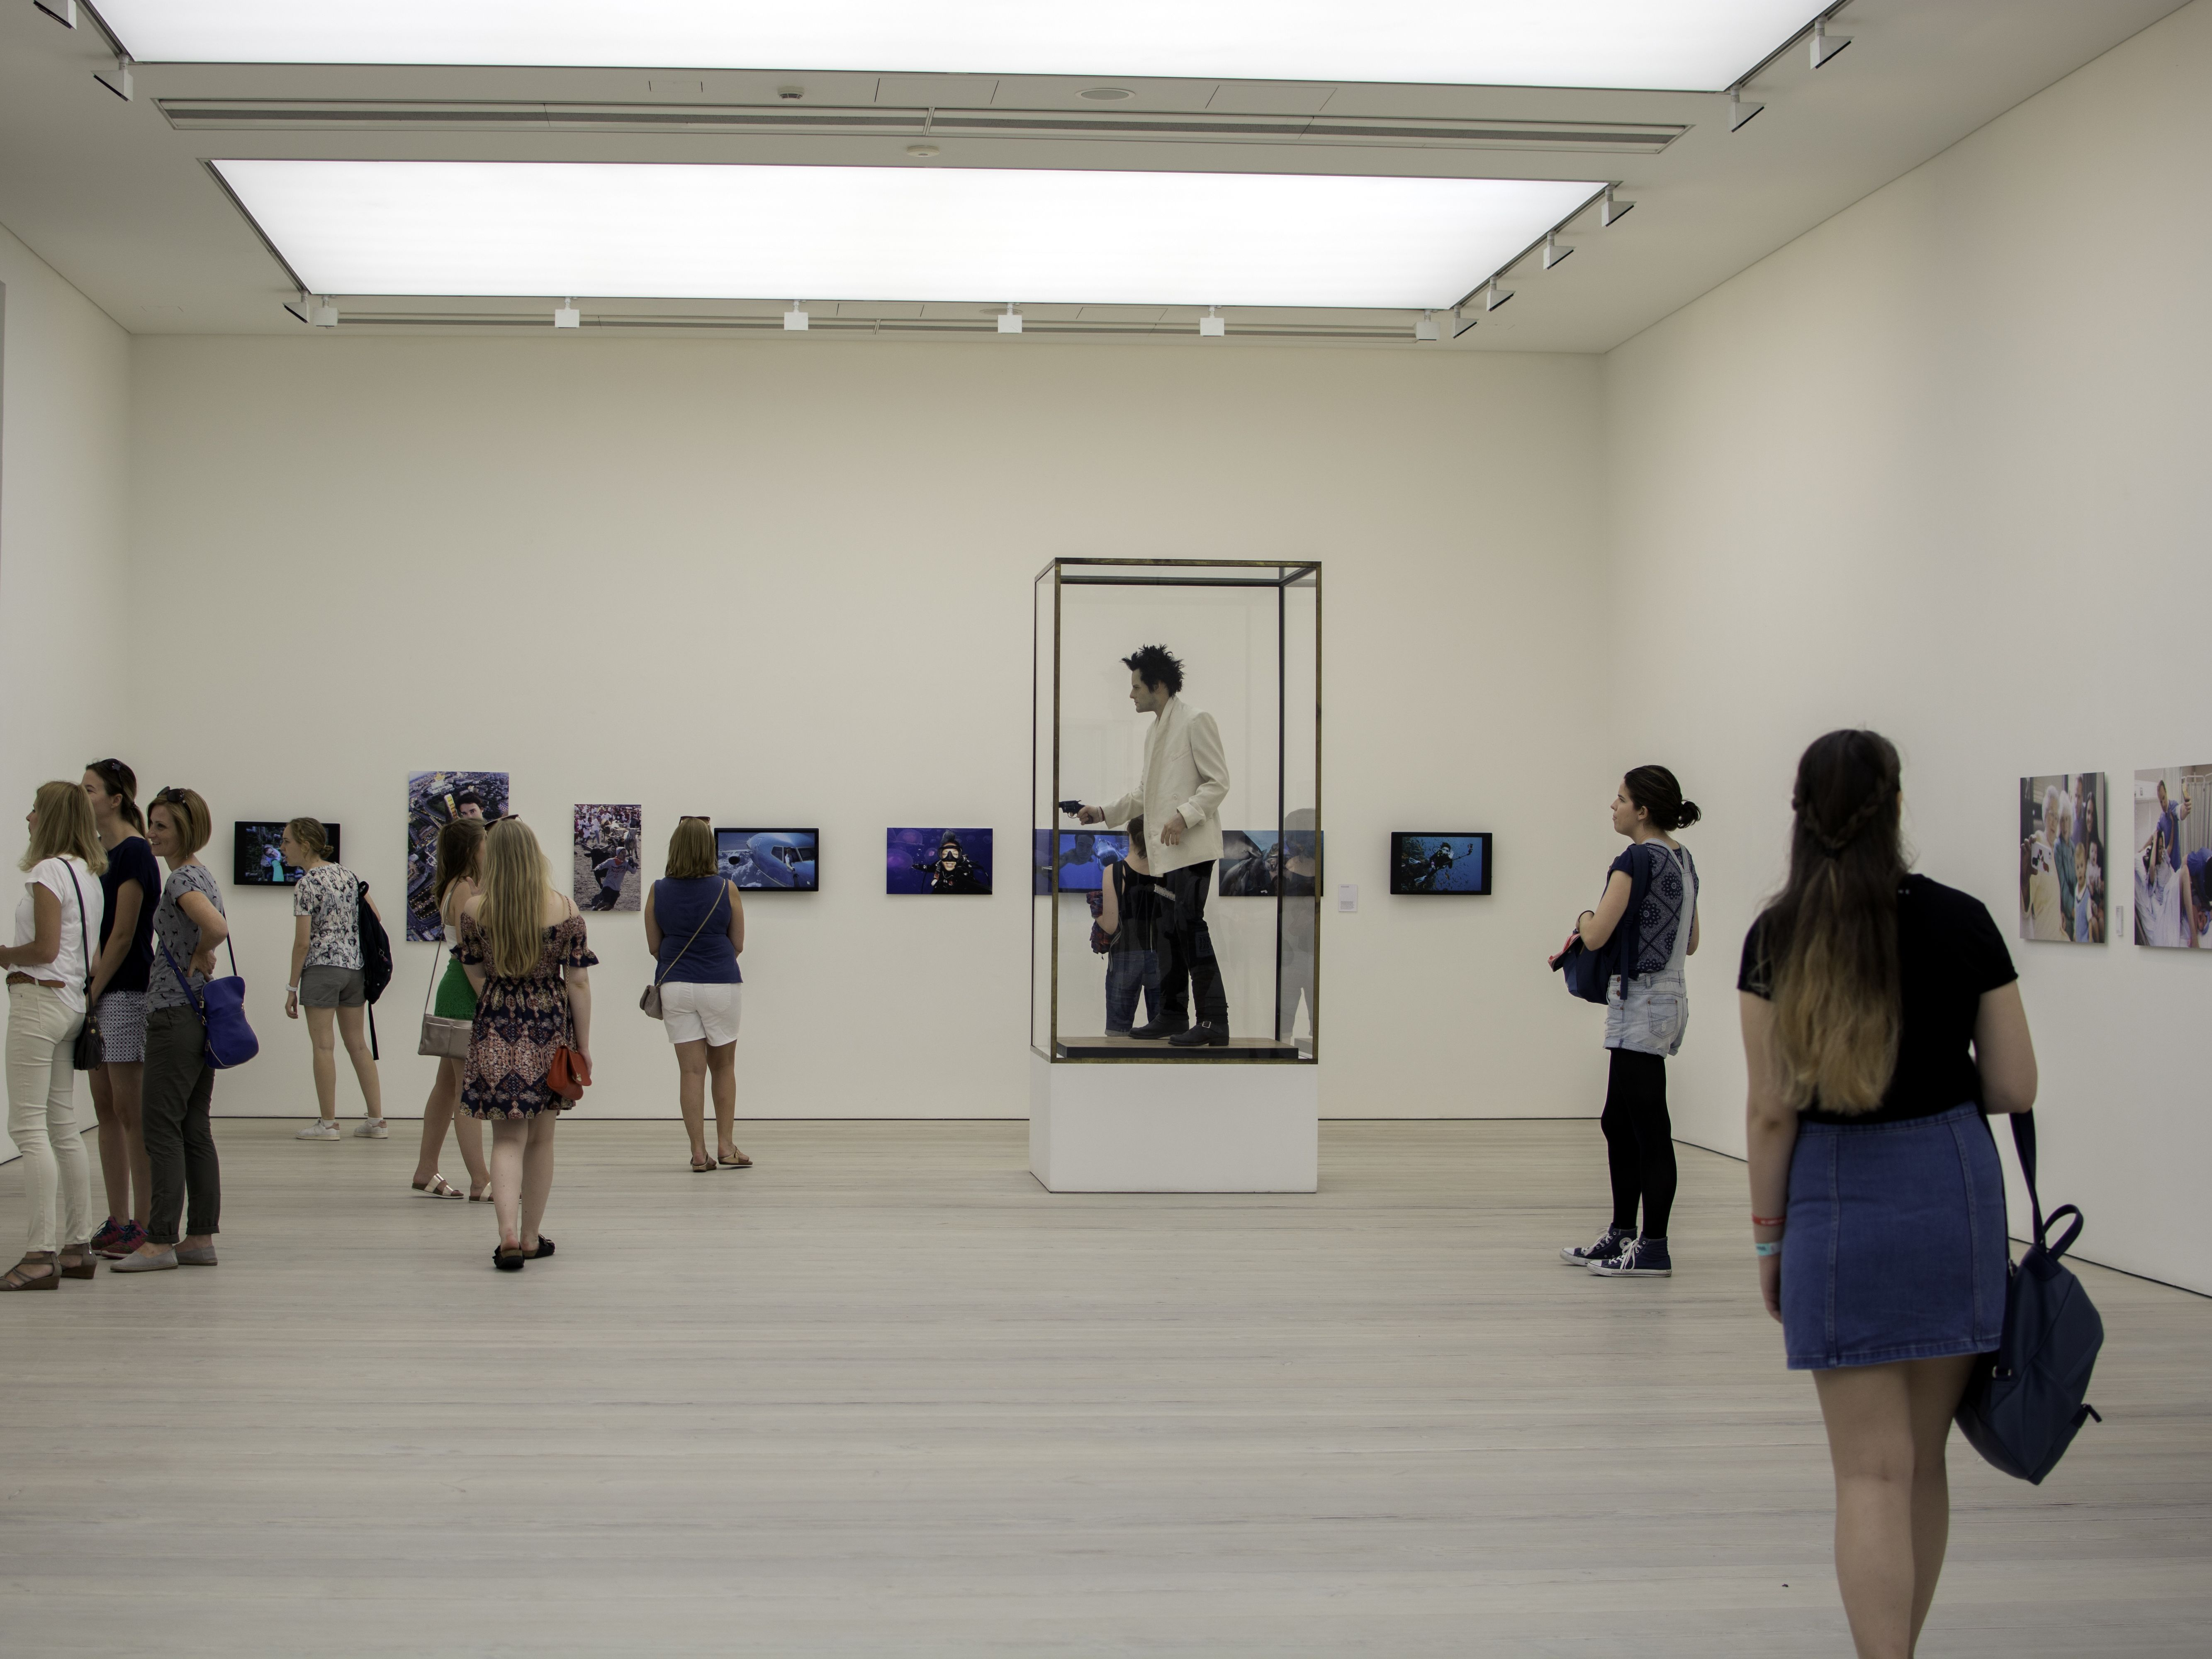 Group of students looking at art in a gallery